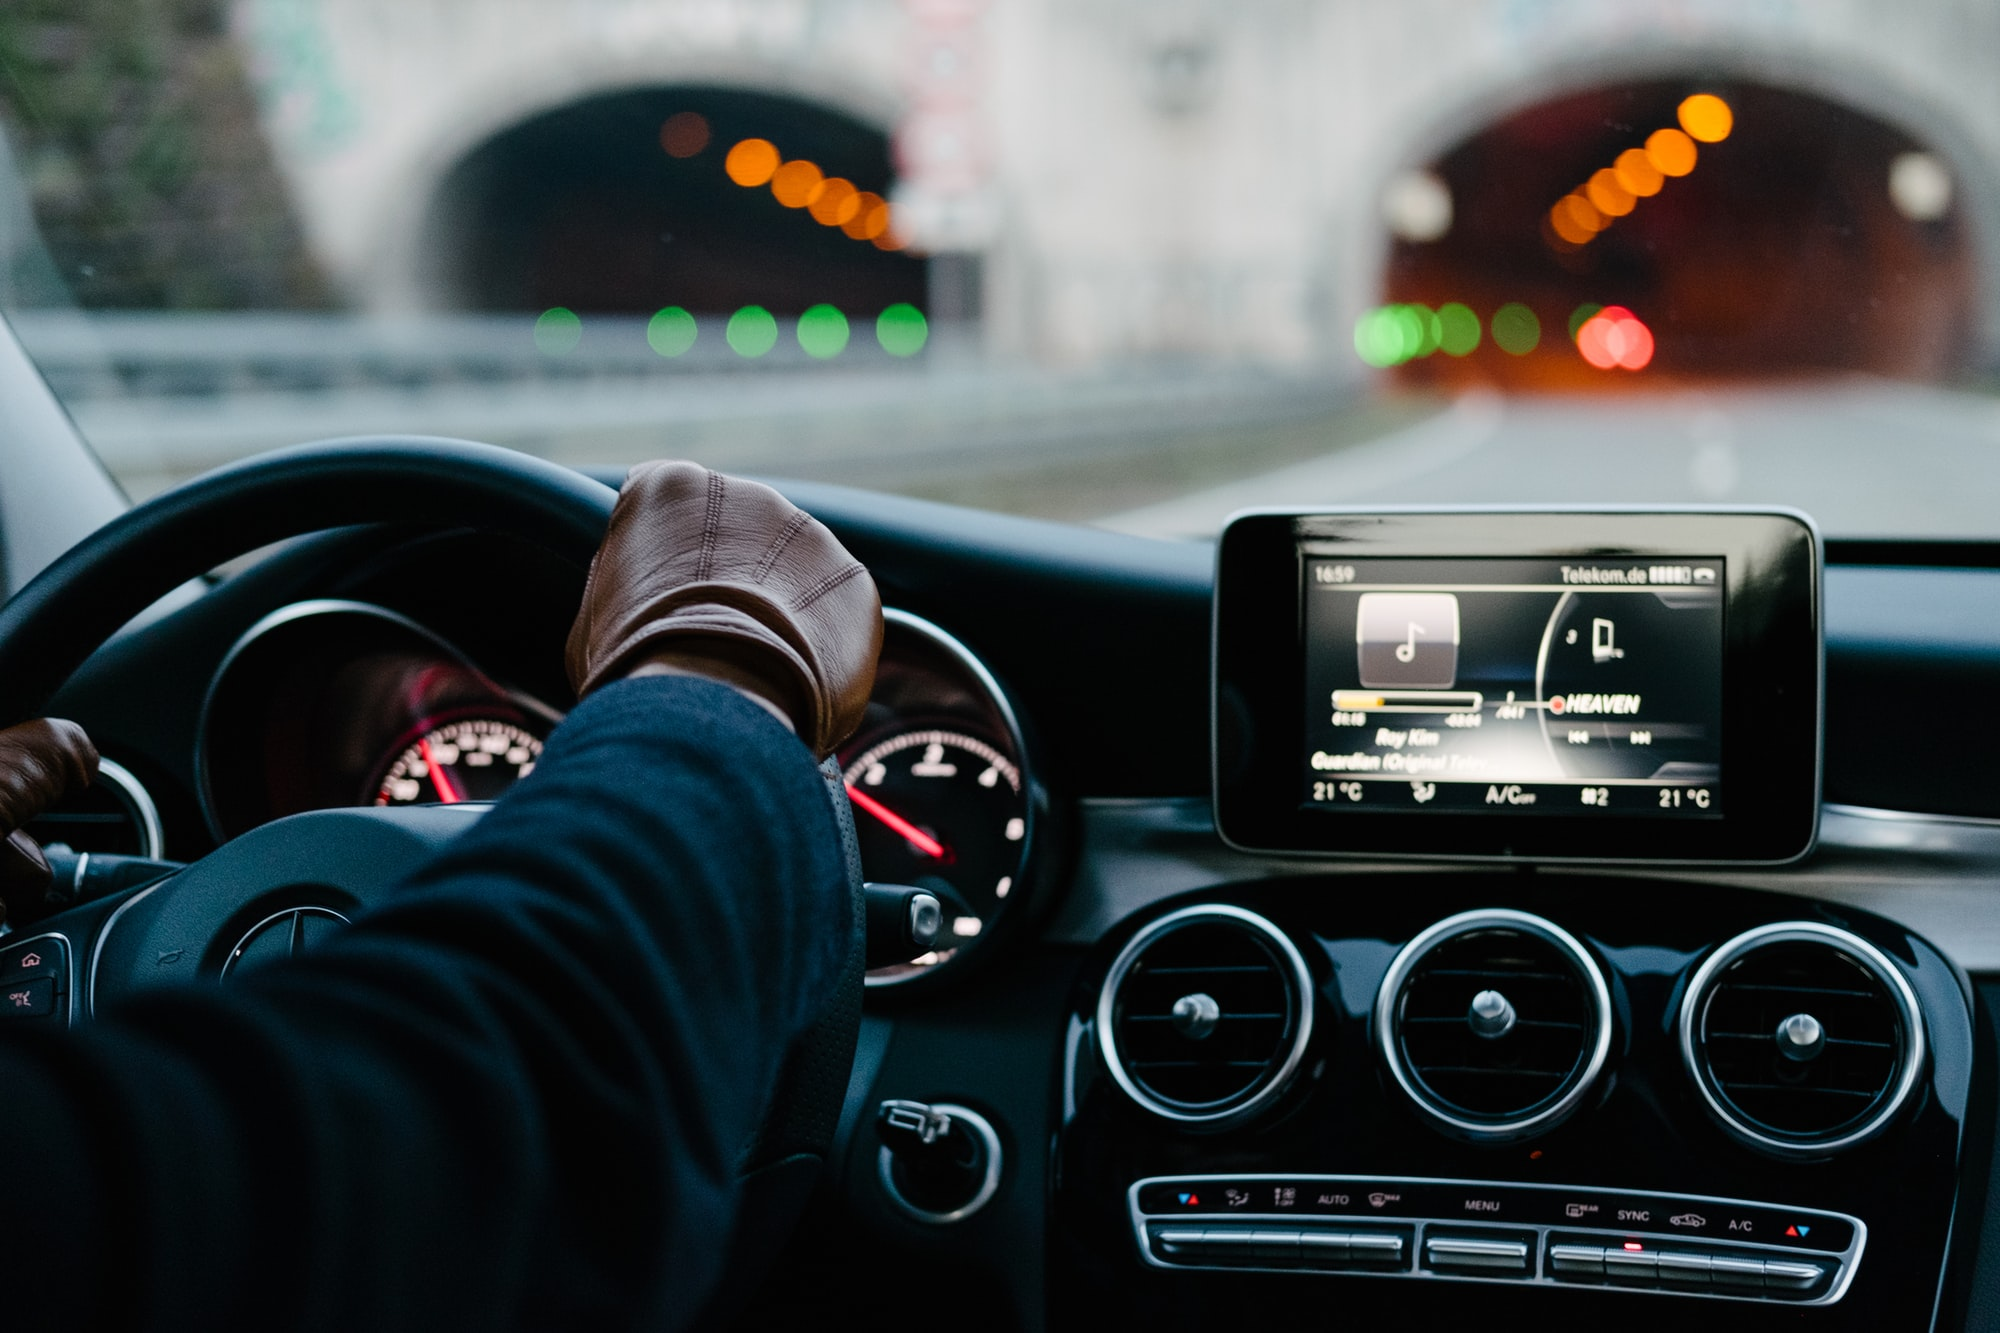 Masking Confusion, In-Car Ads, Change the Channel